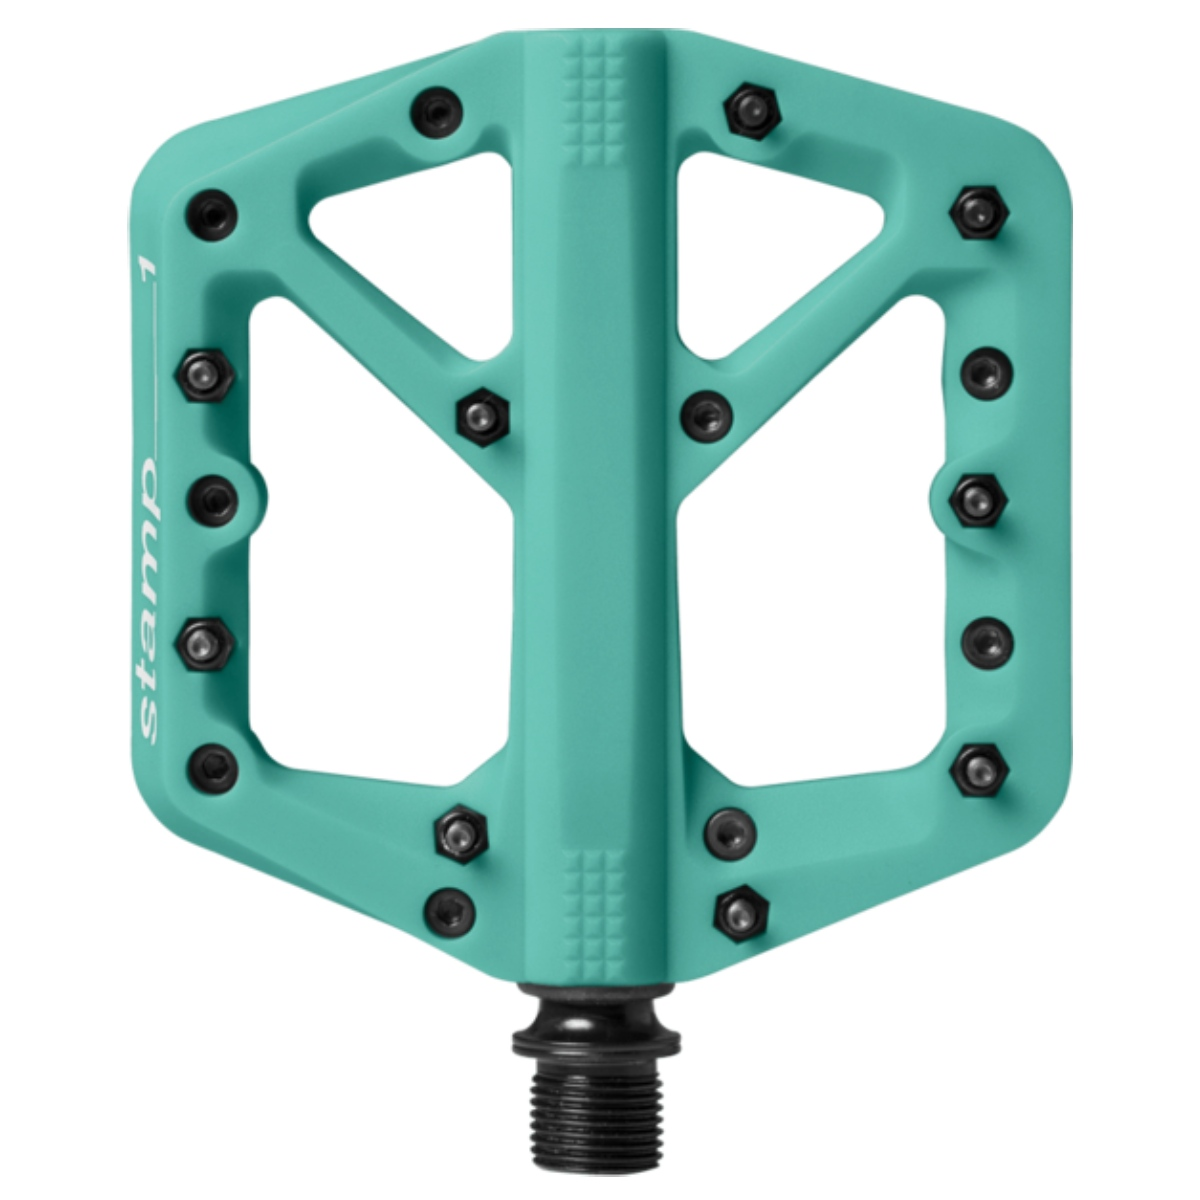 PEDALES TURQUOISE CRANK BROTHERS STAMP 1